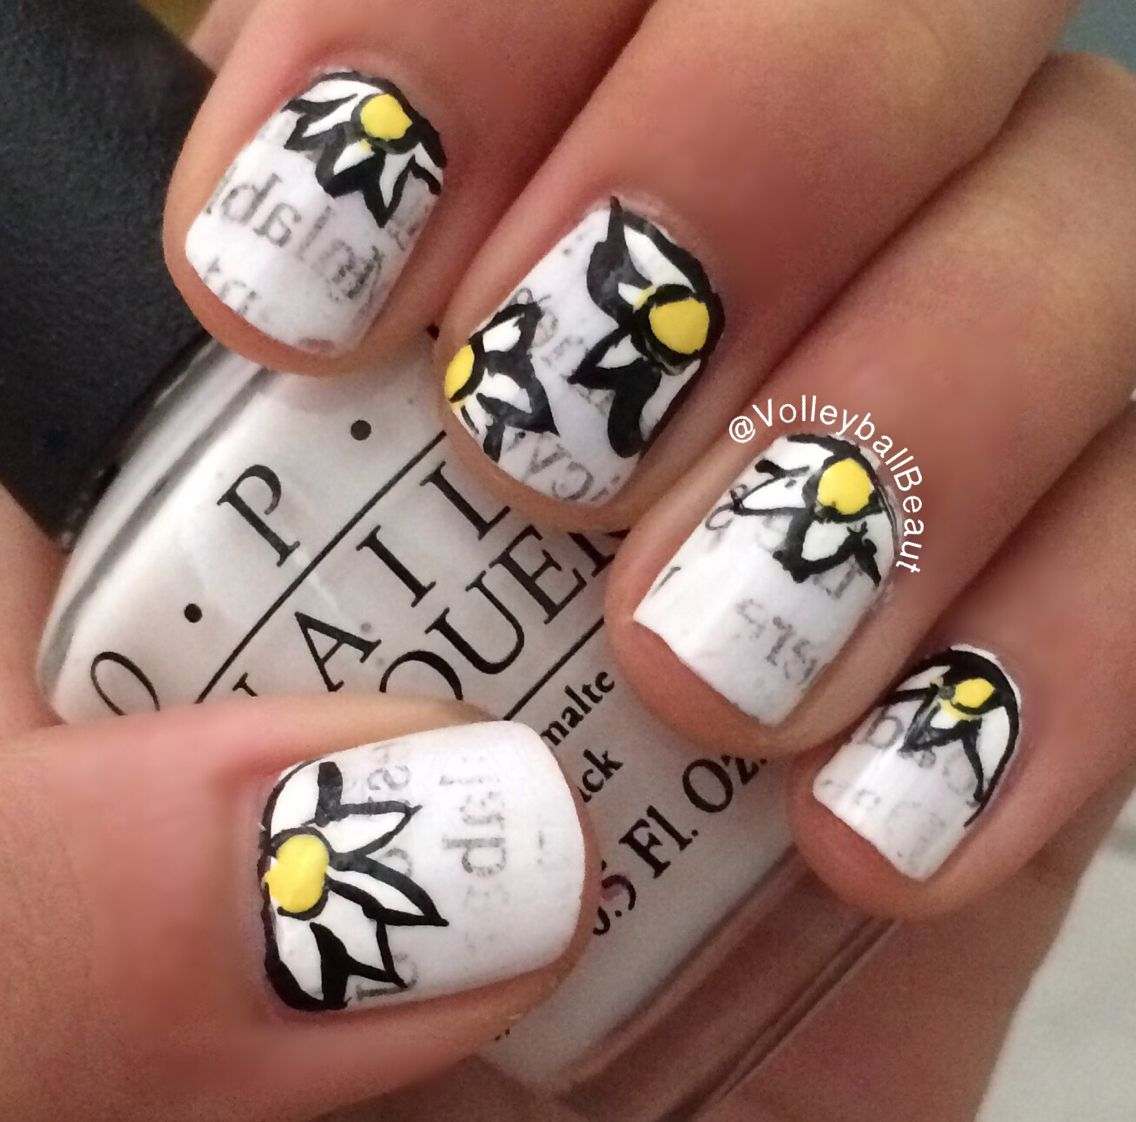 New nail art inspired by John green's looking for Alaska :) follow my nail account on Instagram (@nail.art.by.andi) for the tutorial ву: νσℓℓєувαℓℓ вєαυту♛ ↠ {VolleyballBeaut}↞